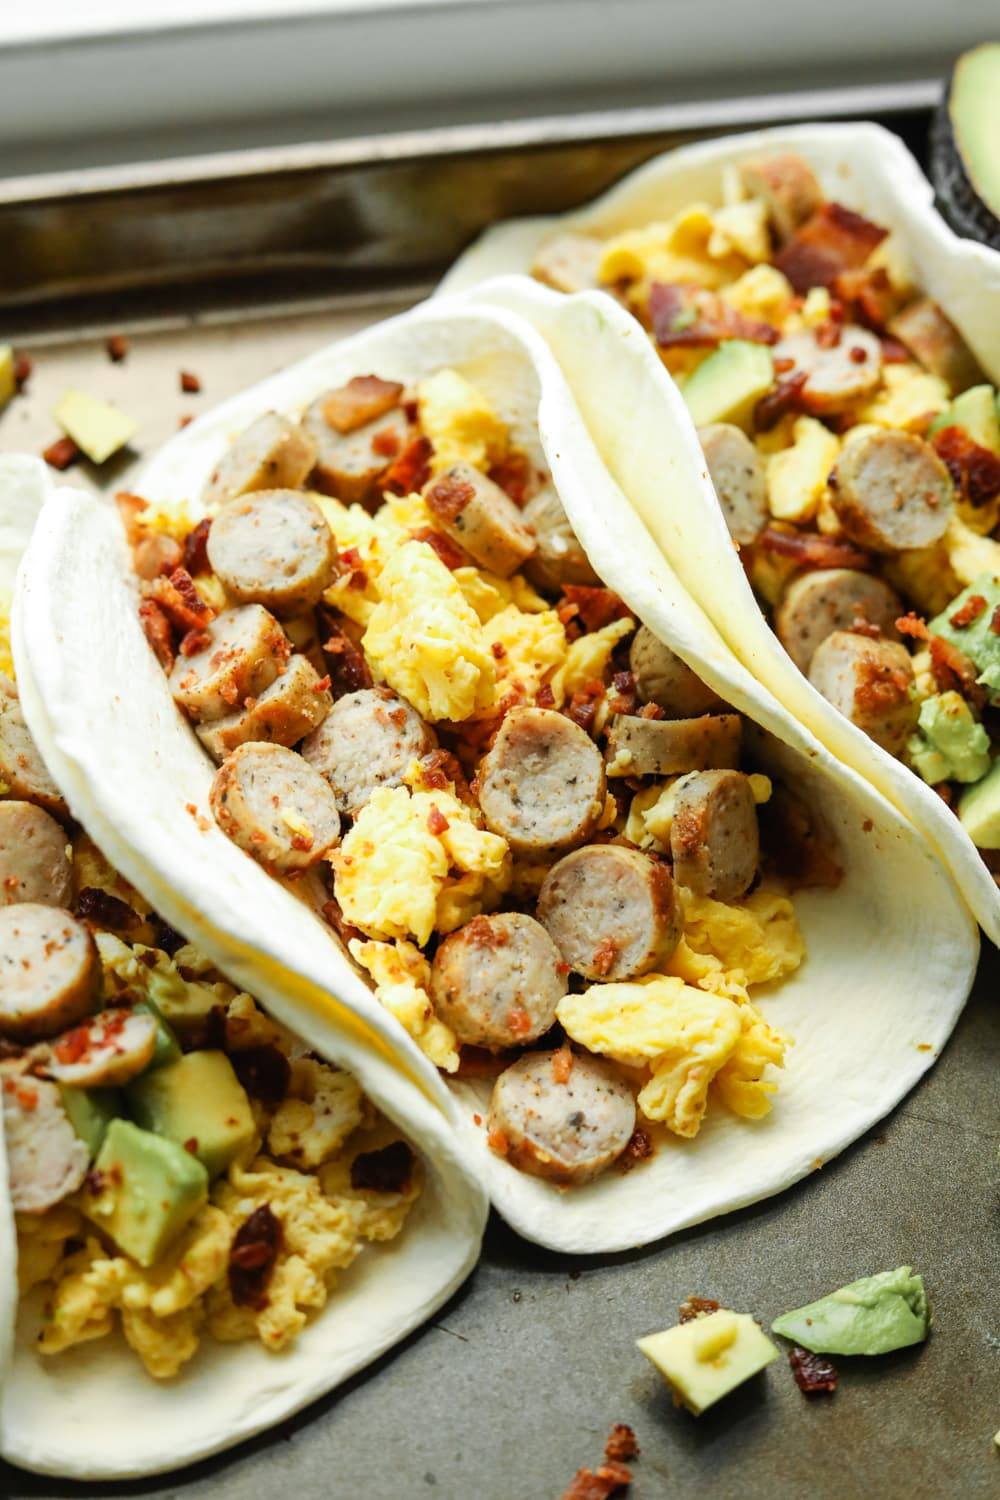 A baking sheet filled with breakfast tacos. The tacos have eggs, sausage, and bacon in them. Some of them have avocado as well.